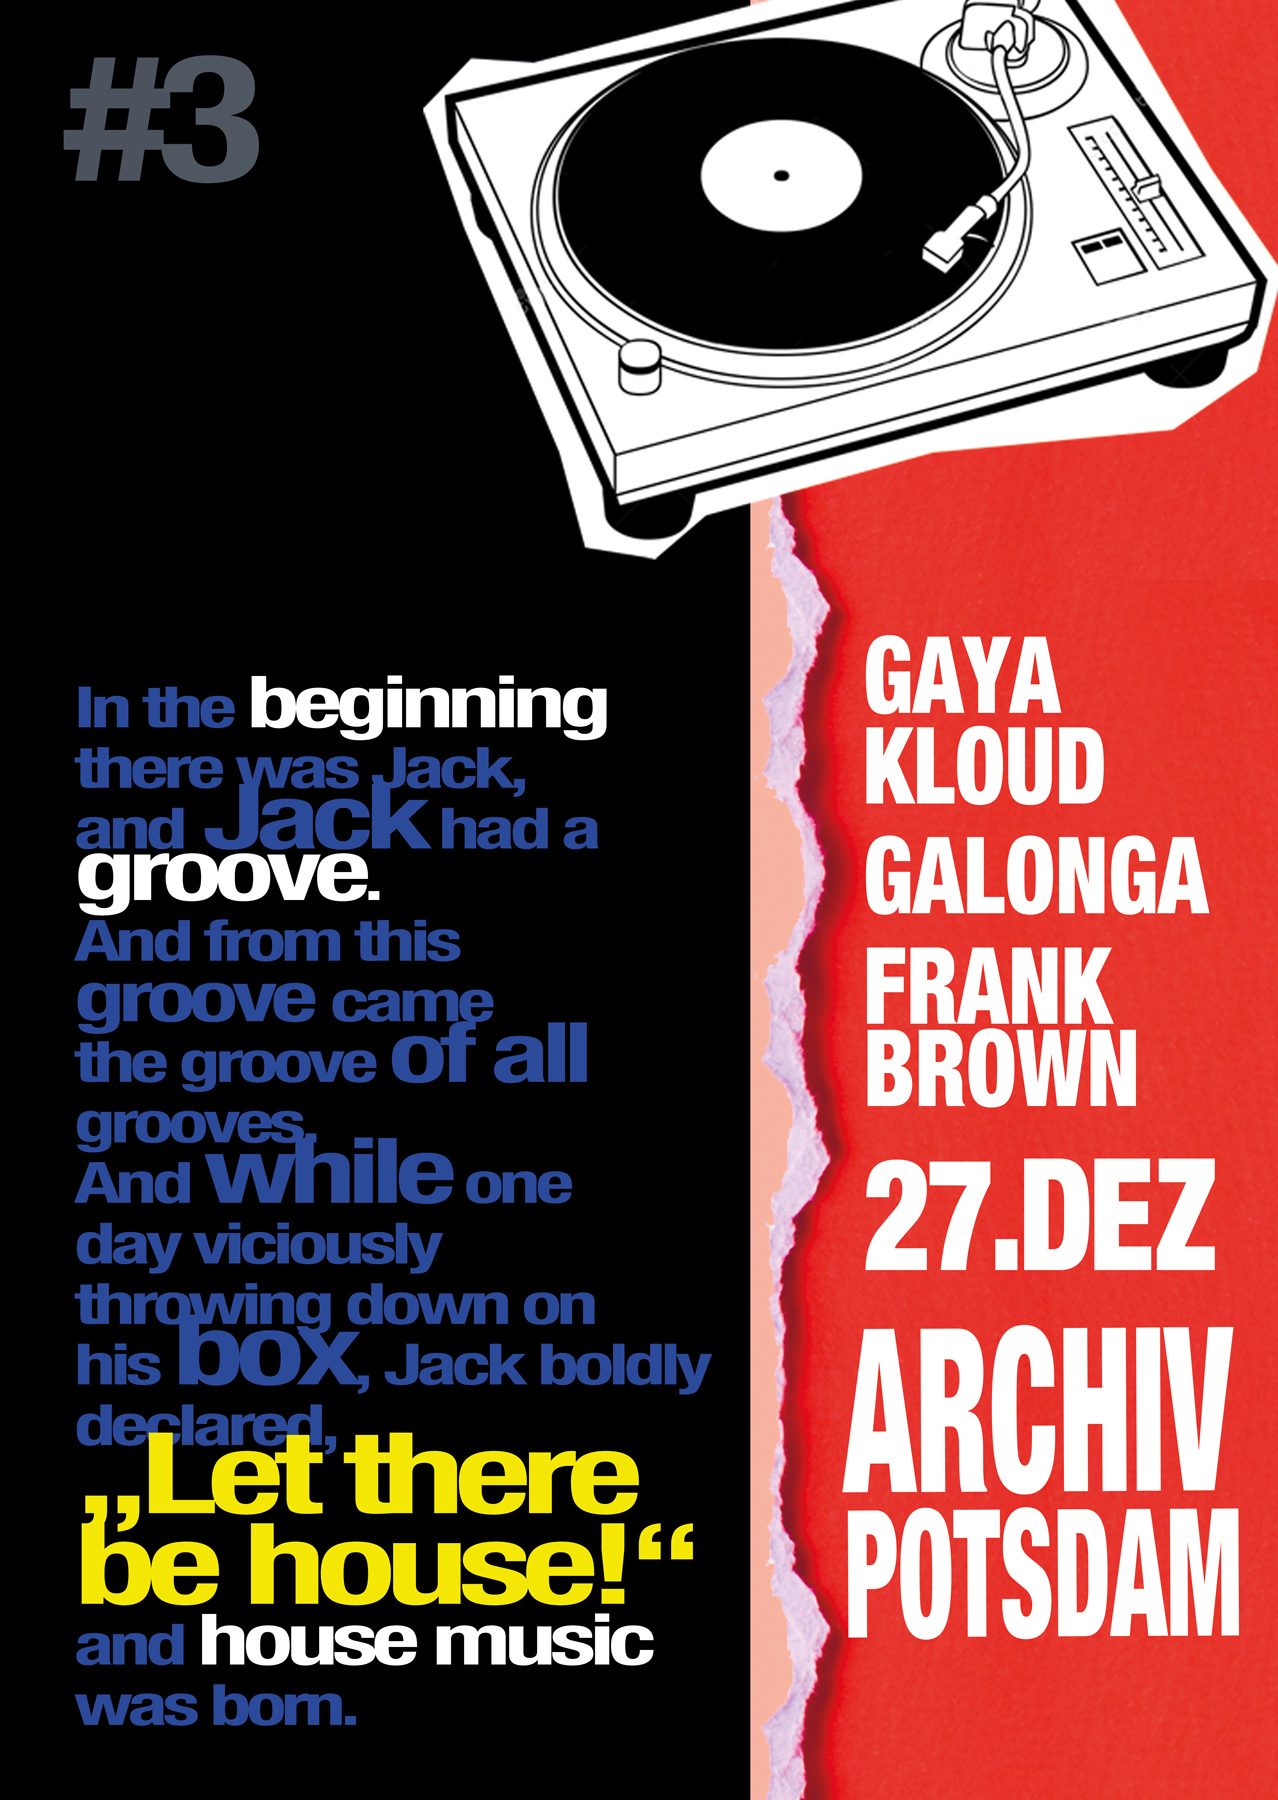 27.12.14 Beatenterprises mit Frank Brown, Mr. Galonga & Gaya Kloud @ Archiv